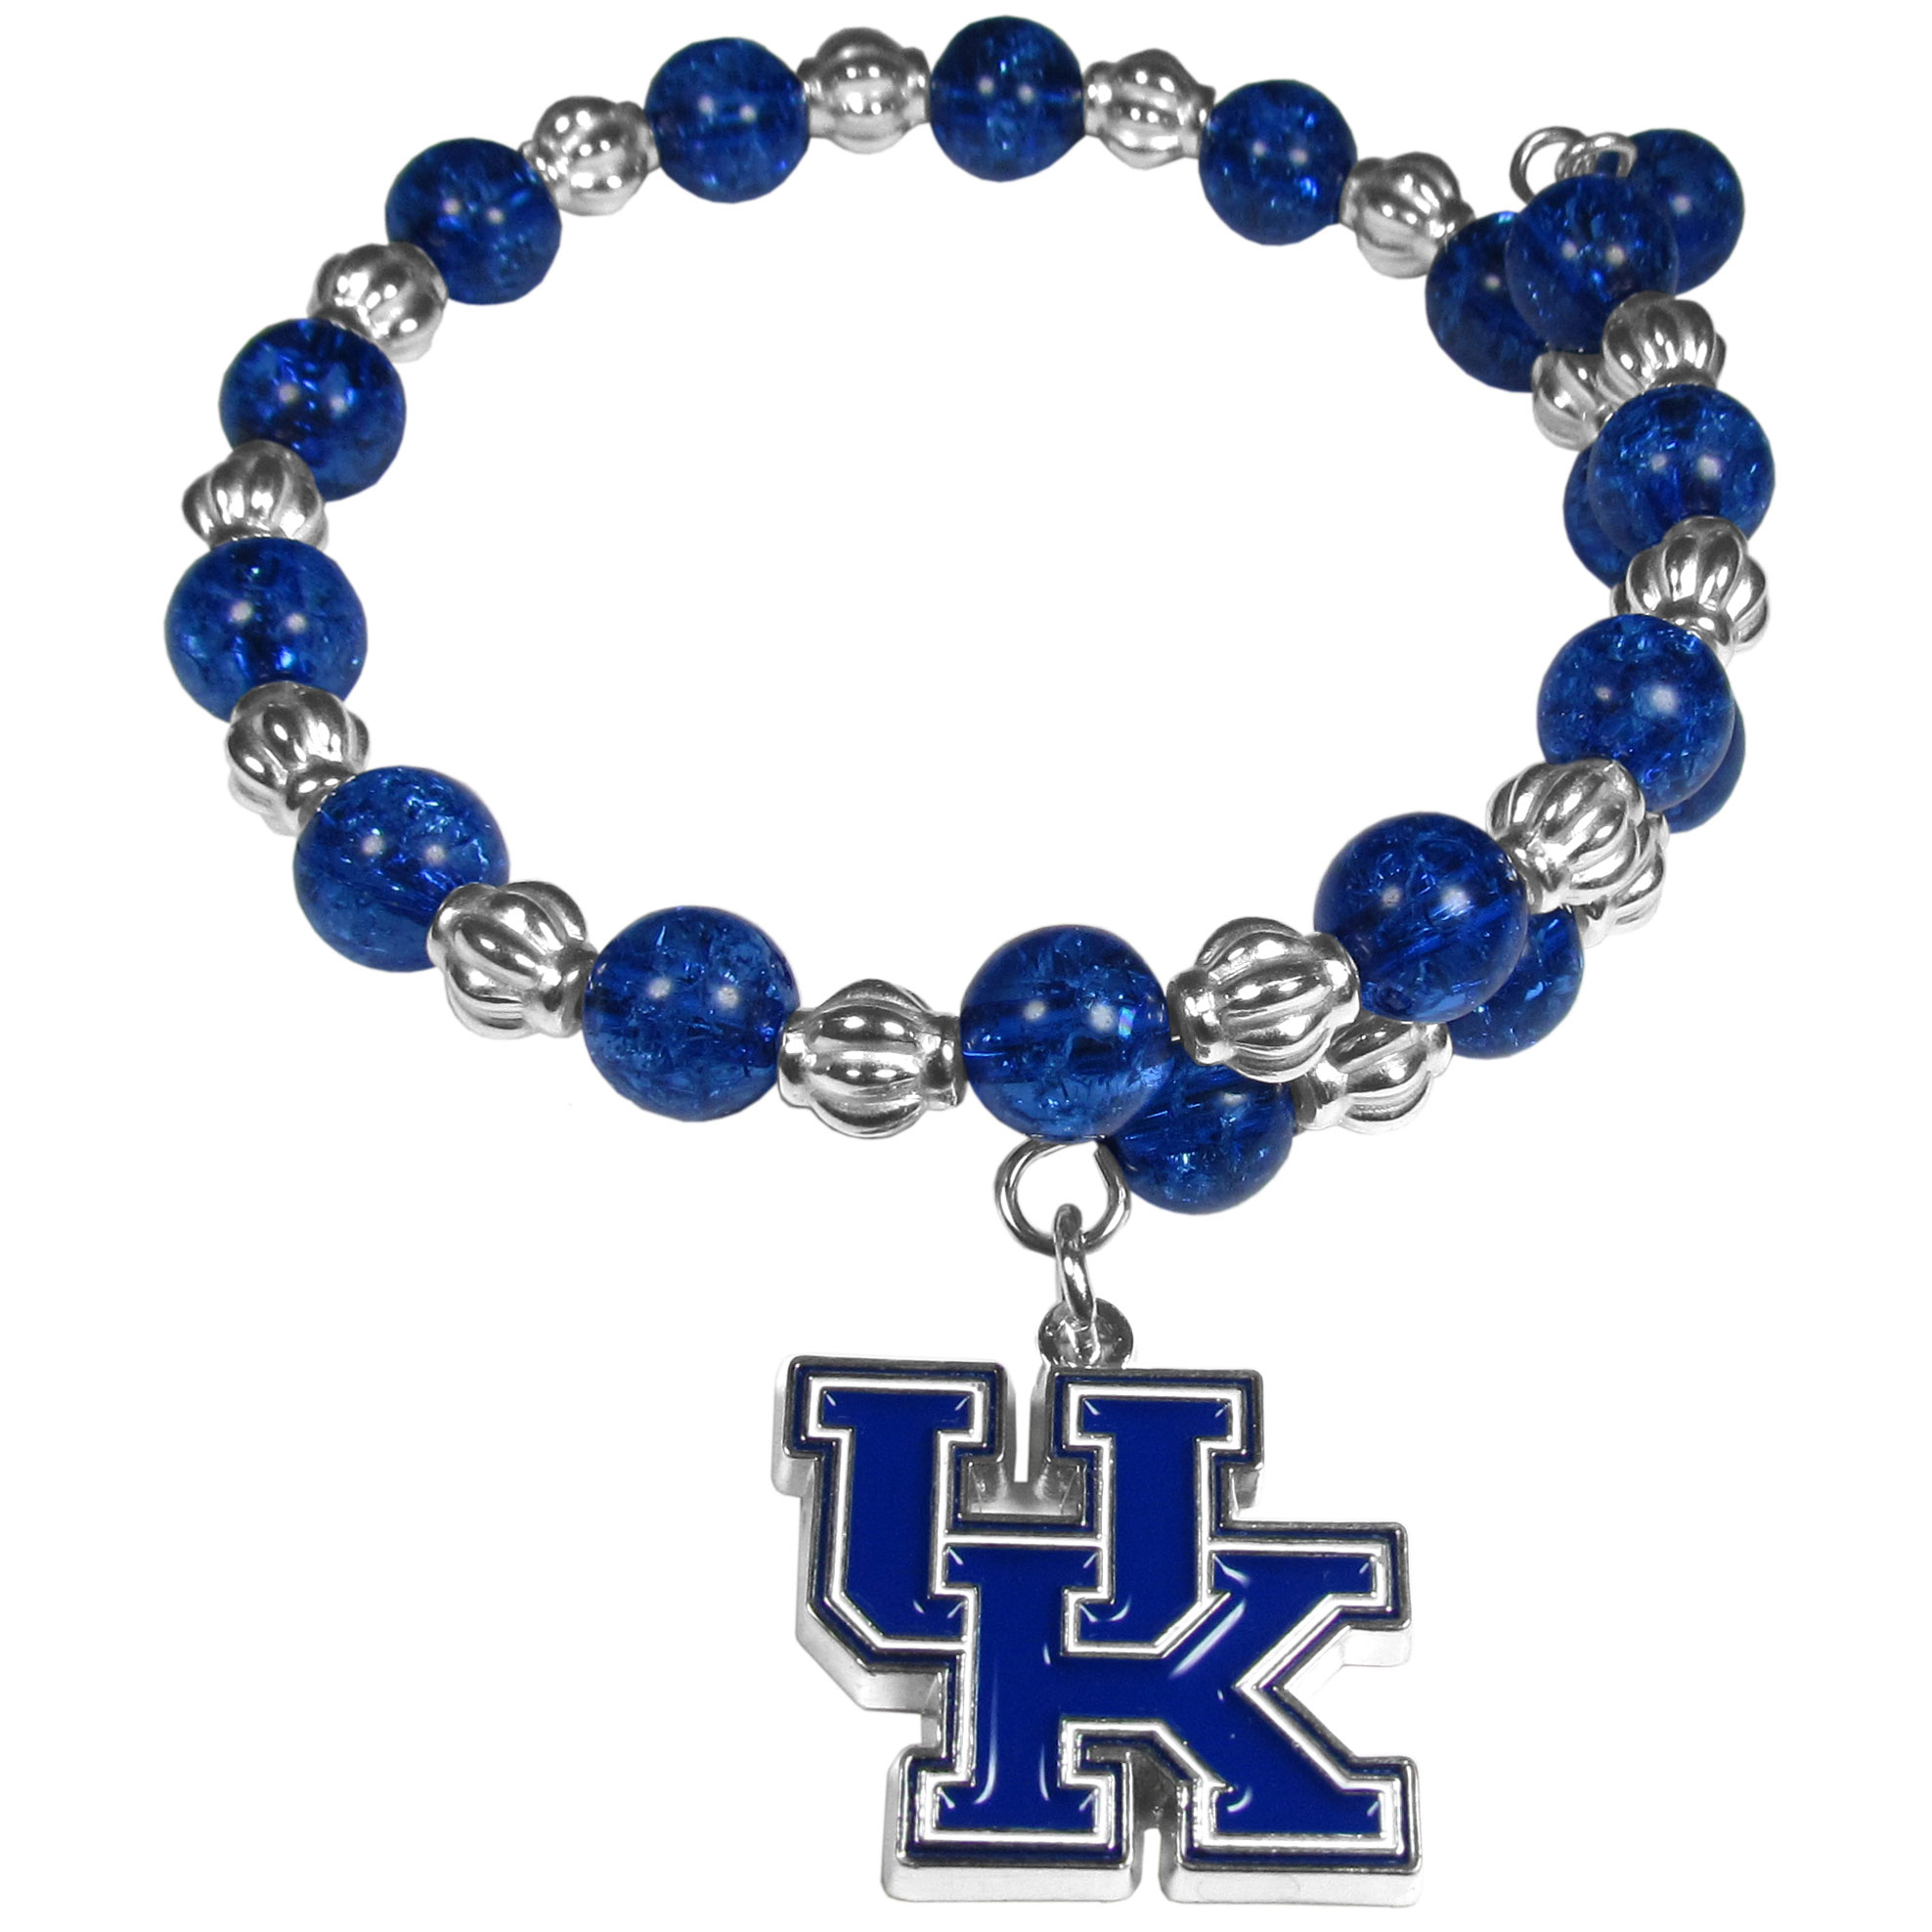 Kentucky Wildcats Bead Memory Wire Bracelet - Our Kentucky Wildcats memory wire bead bracelet is trendy way to show off your love of the game. The double wrap bracelet is completely covered in 7.5 mm crystals that are broken up with silvertoned beads creating a designer look with a sporty twist. The bracelet features a fully cast, metal team charm that has expertly enameled team colors. This fashion jewelry piece is a must-have for the die-hard fan that chic look that can dress up any outfit.